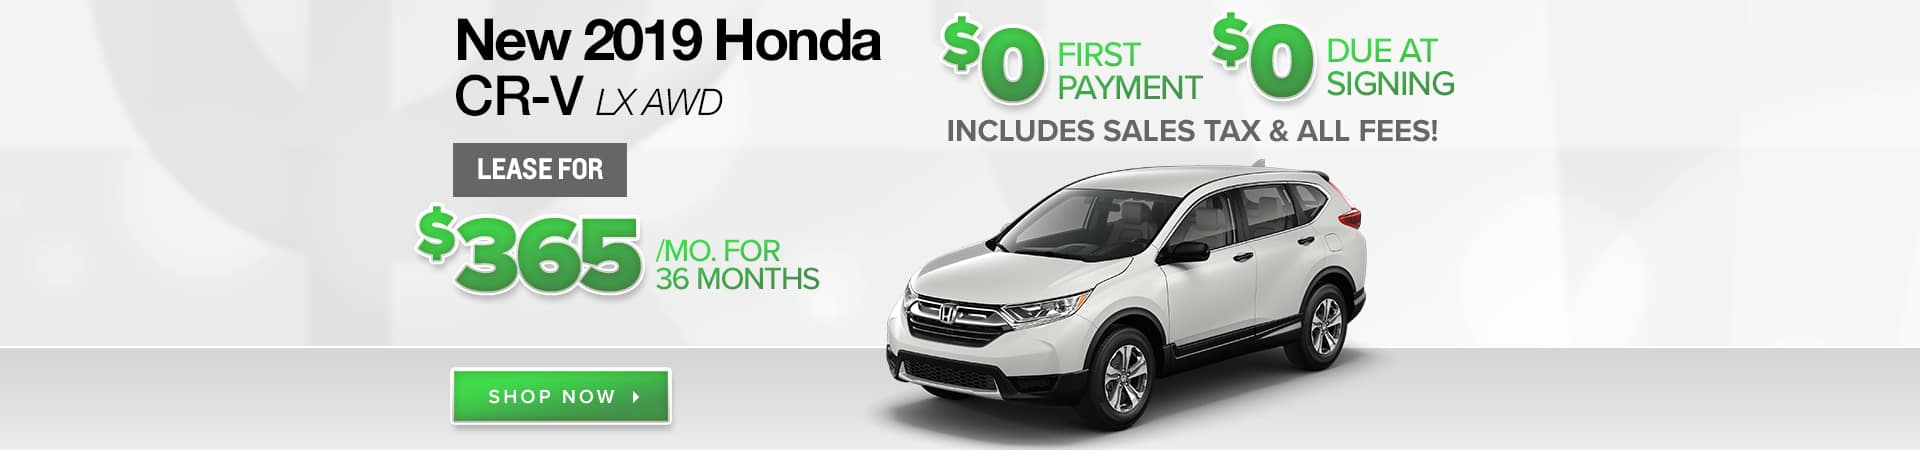 Honda Dealers Ri >> Balise Honda Of West Warwick Honda Dealer In West Warwick Ri